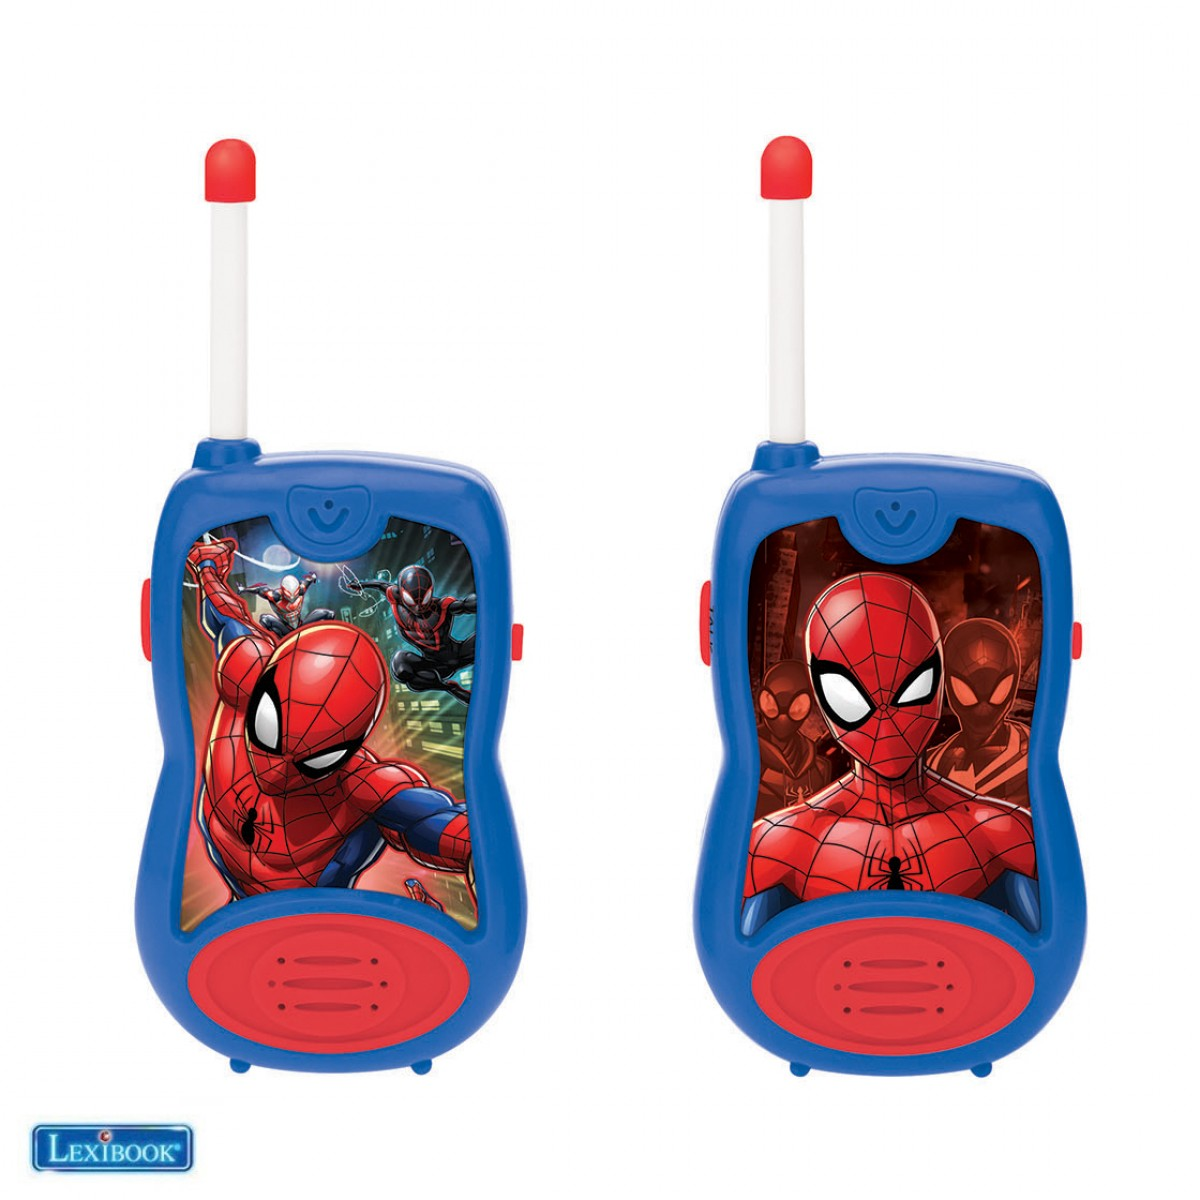 Spider-Man Walkie-Talkies